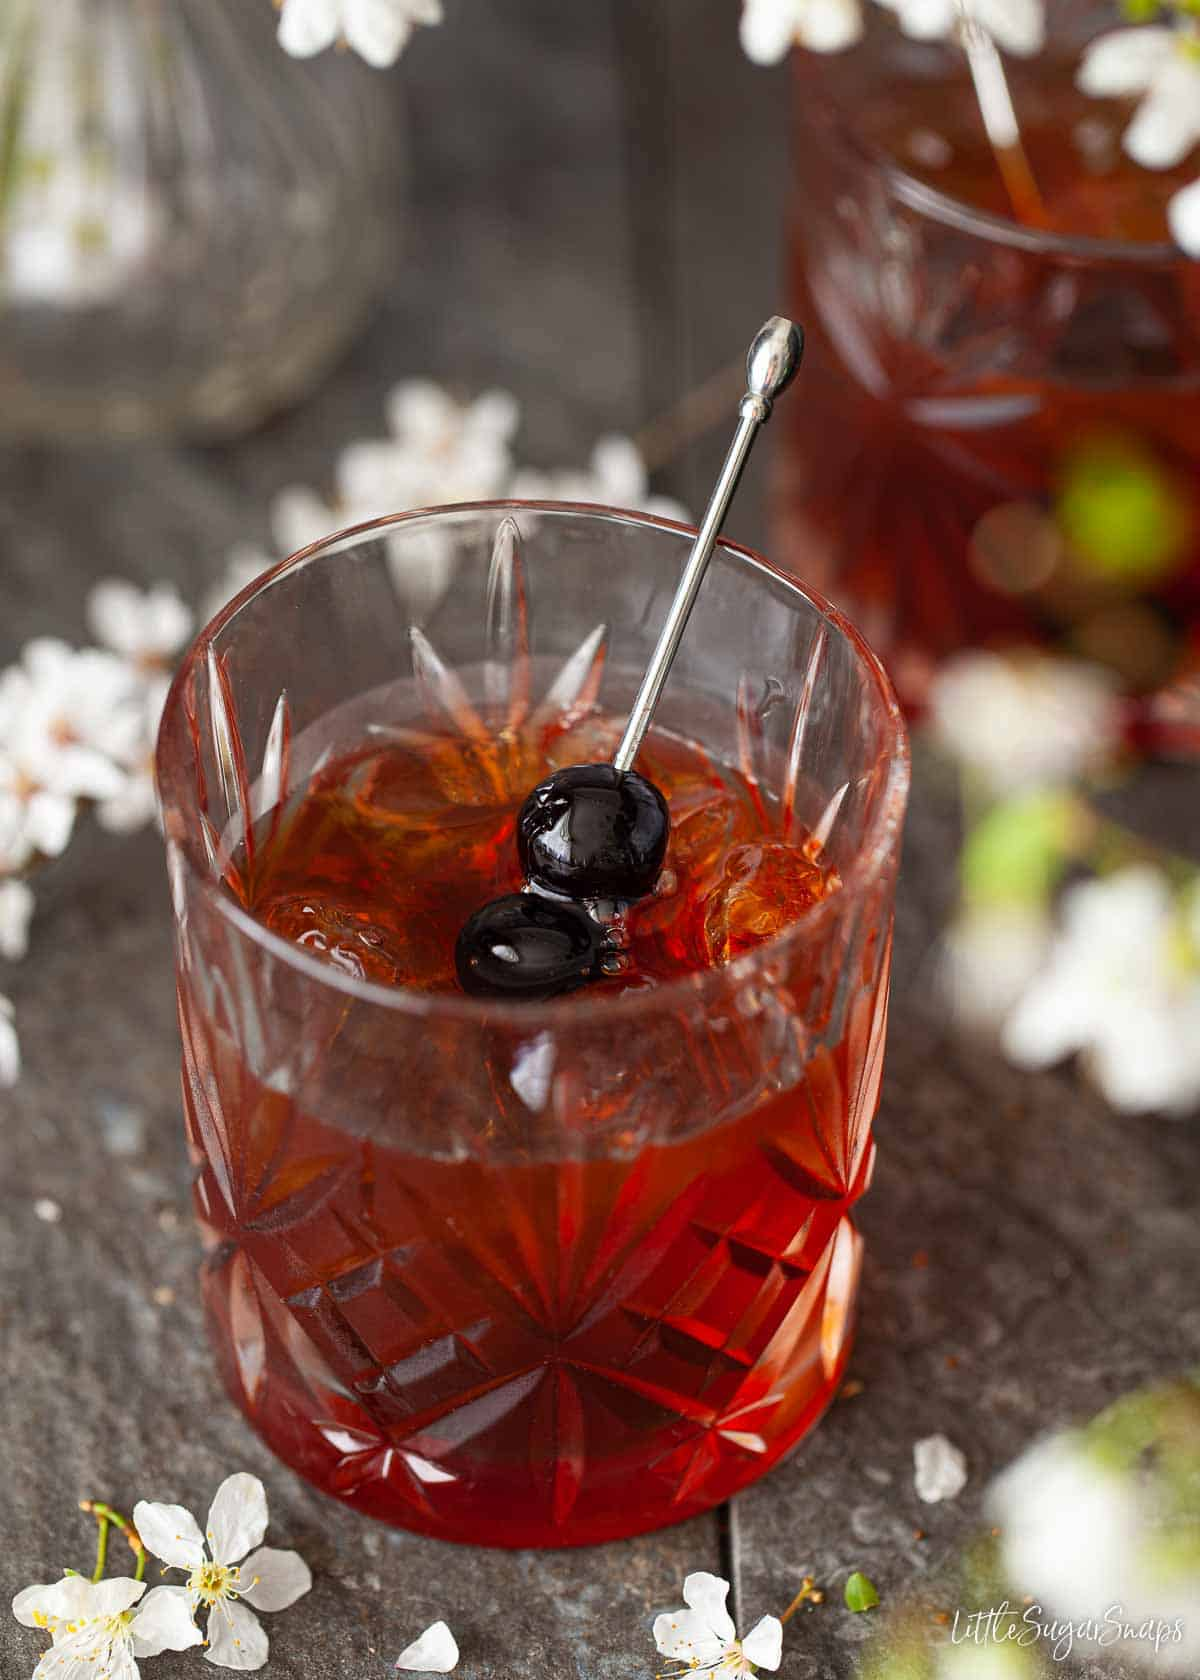 A cocktail made with bourbon whisky and amaro bitter garnished with dark cocktail cherries.